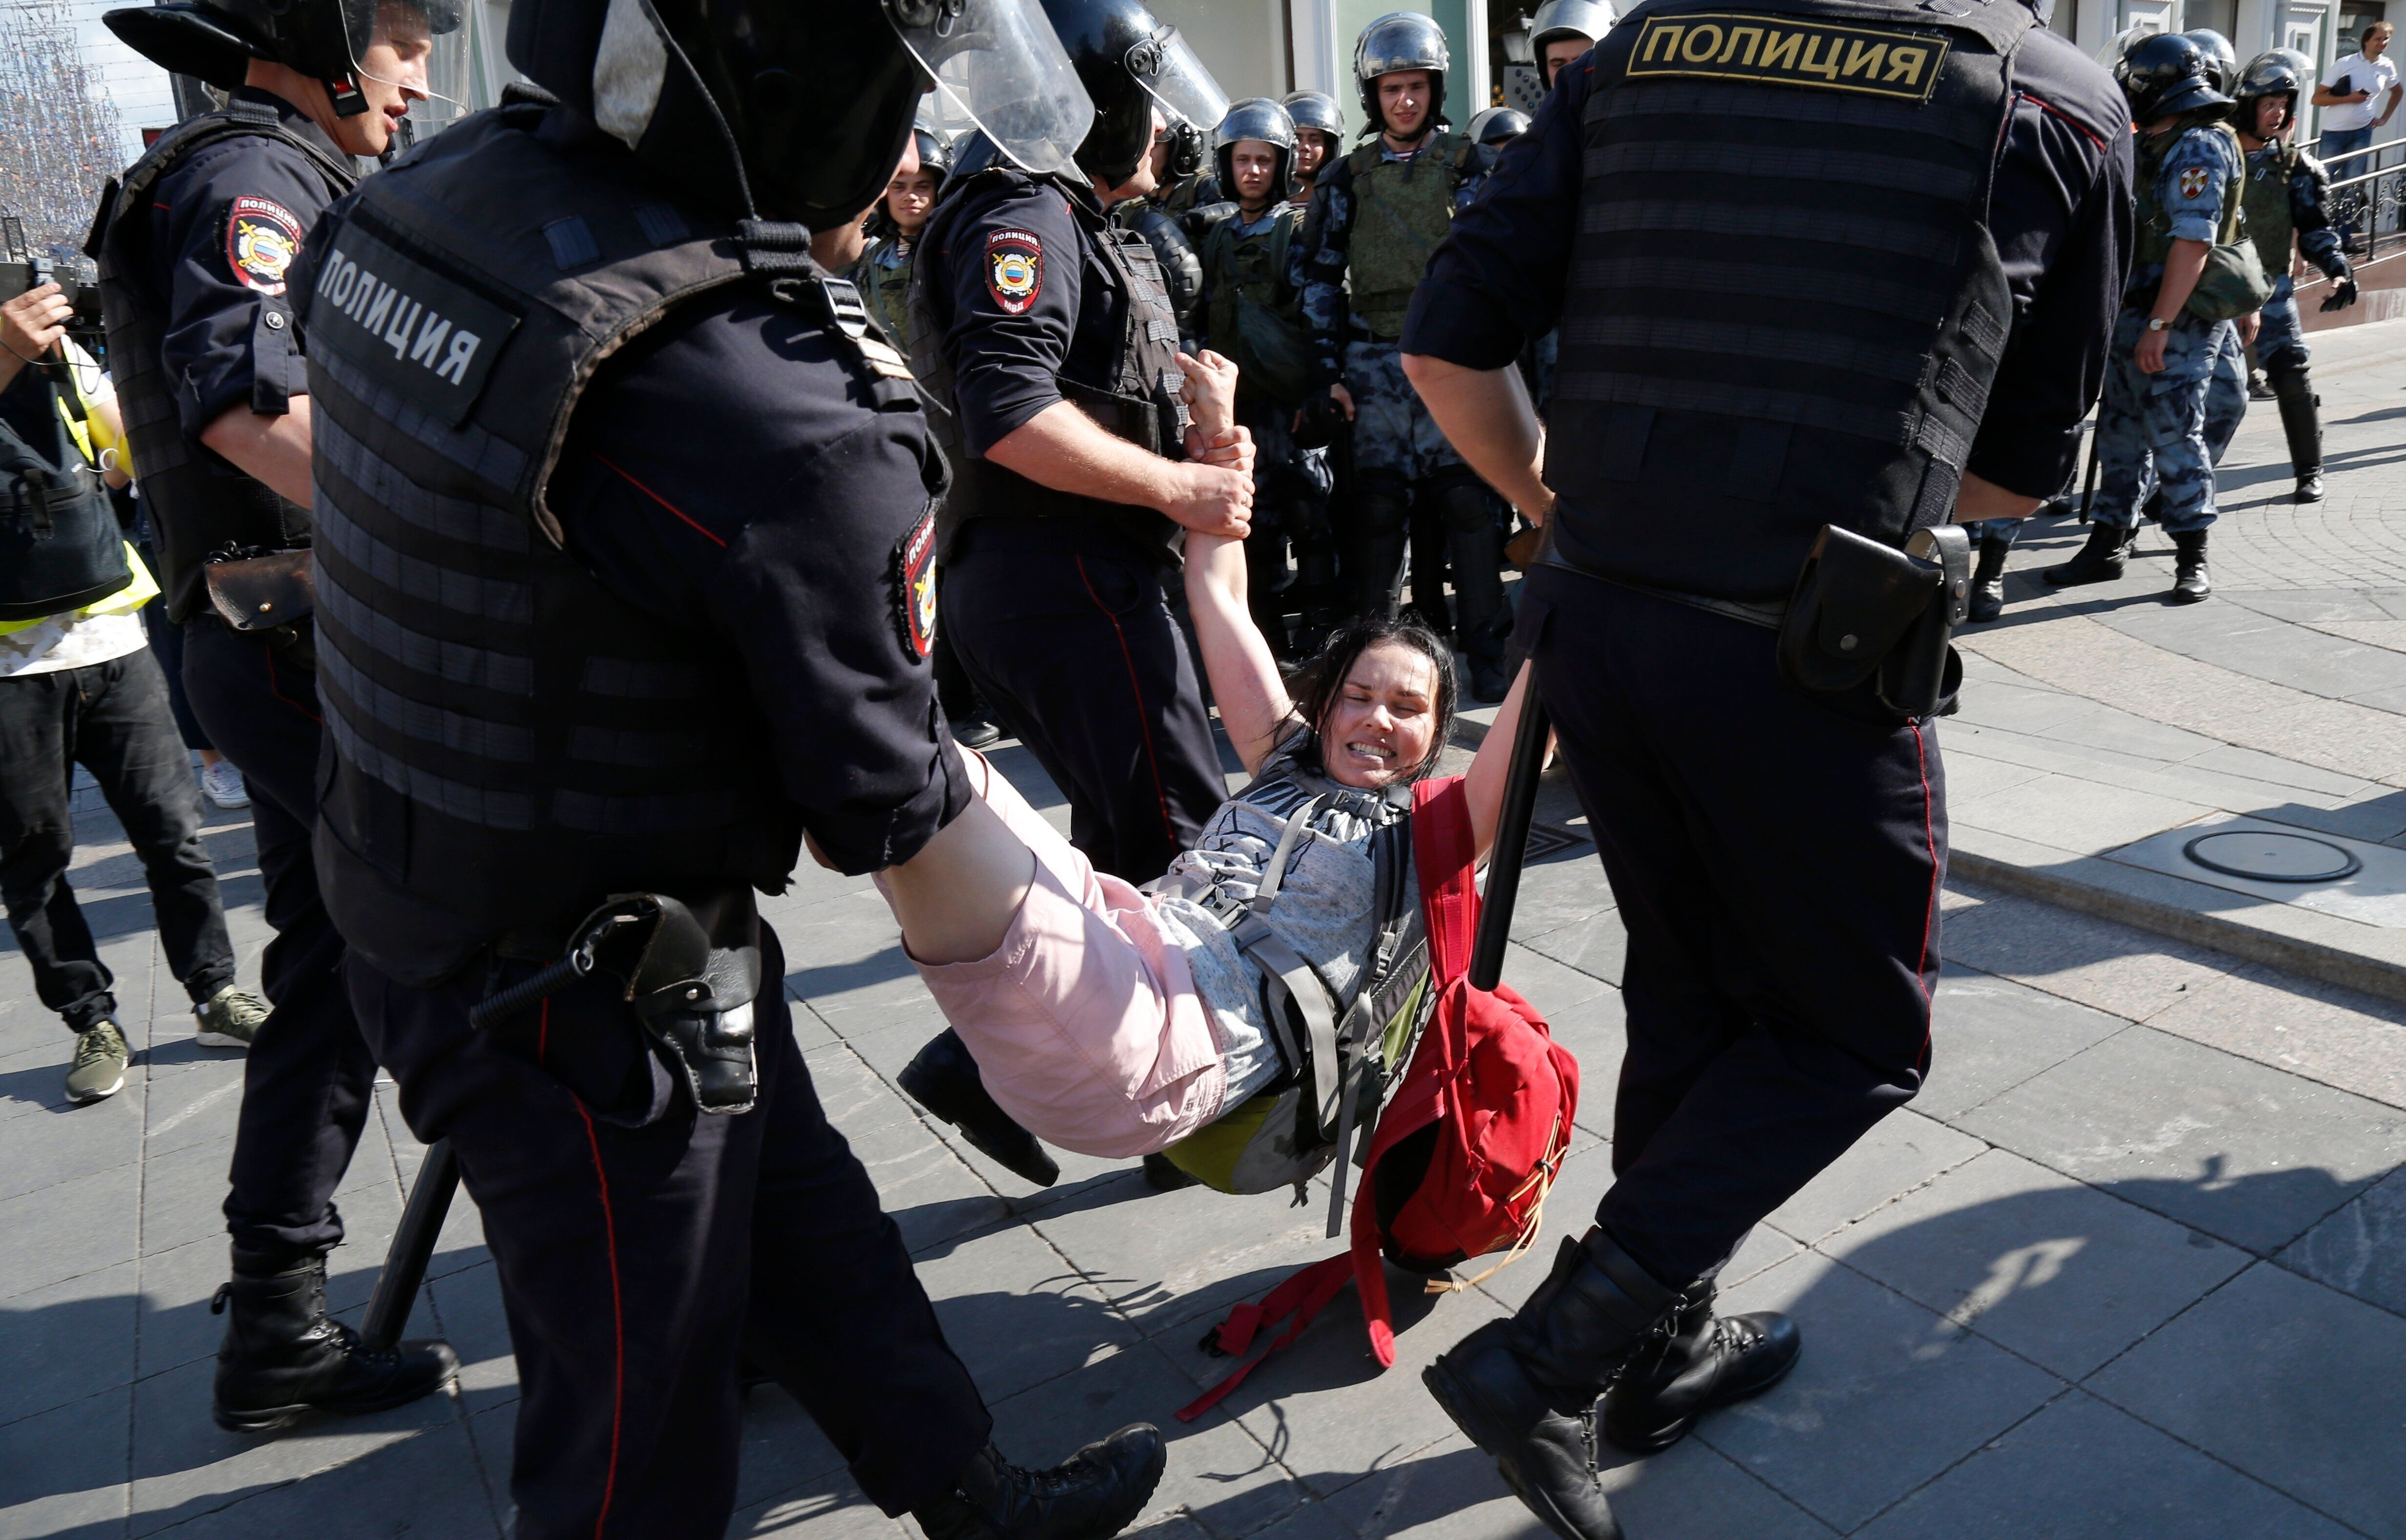 Police officers detain a woman during an unsanctioned rally in the center of Moscow, Russia, Saturday, July 27, 2019. Russian